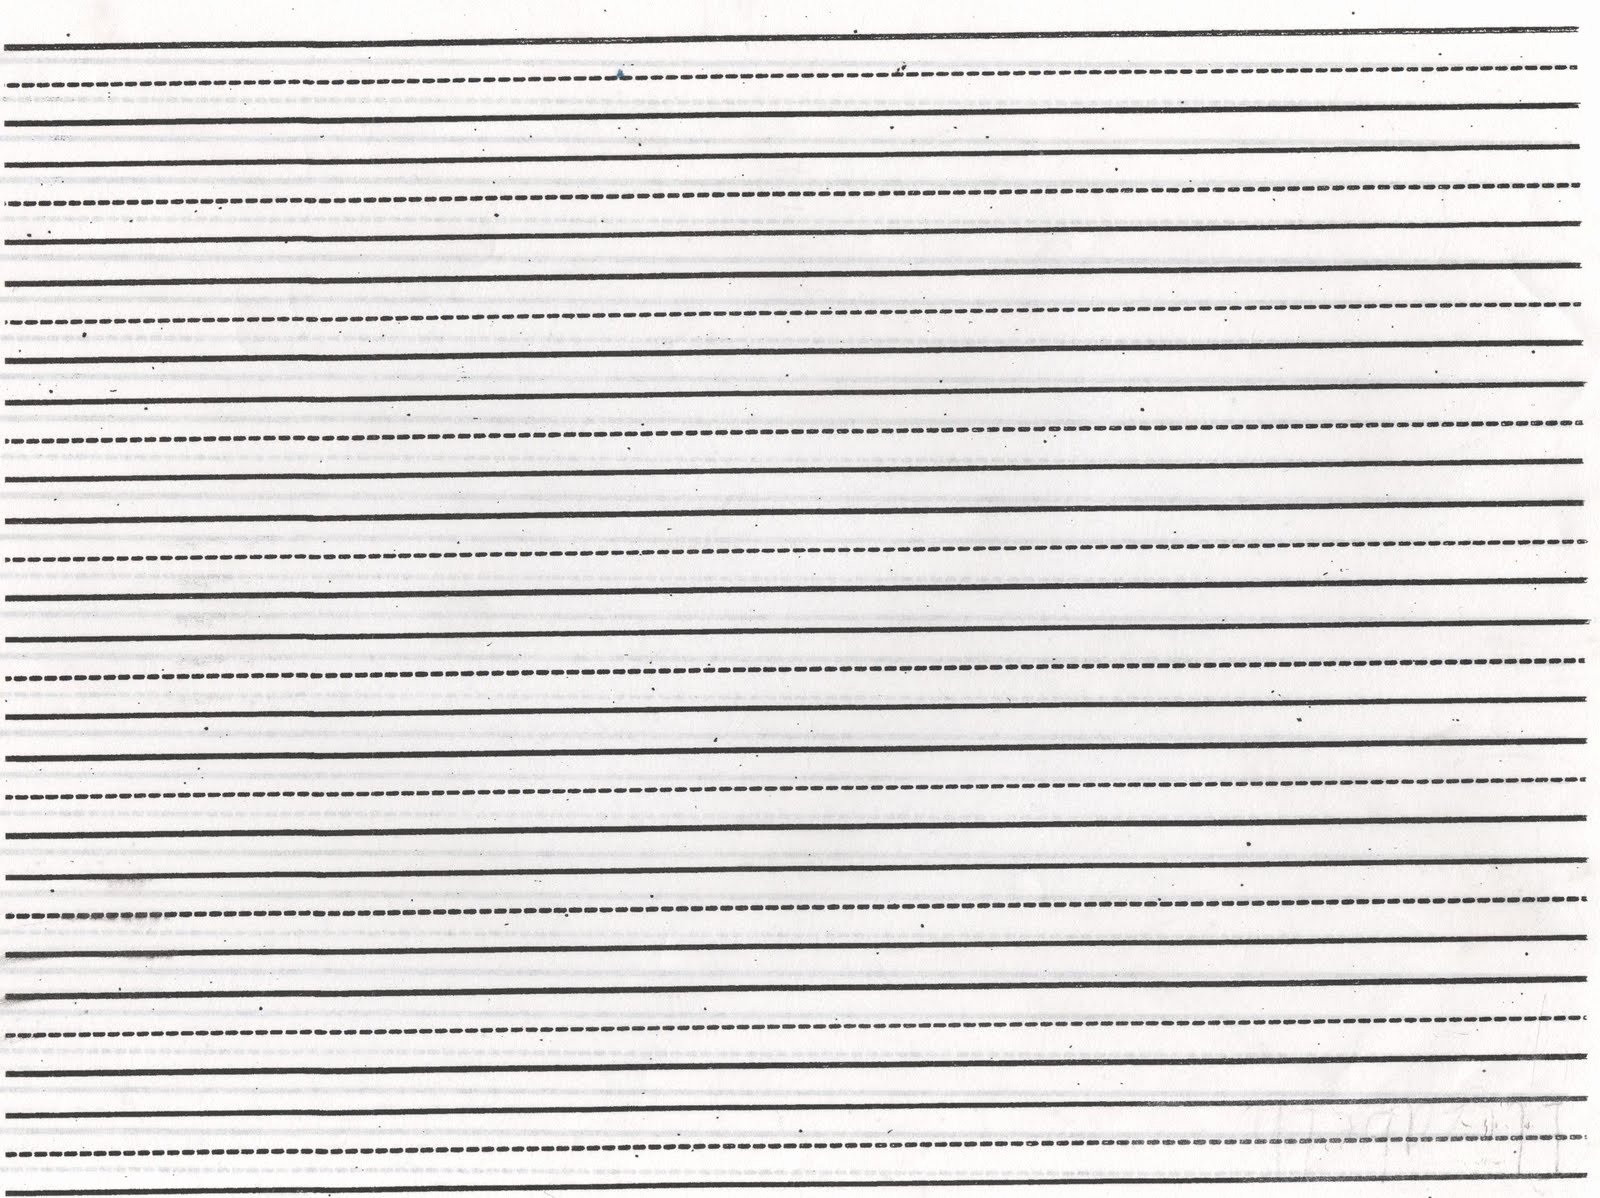 Lined Writing Paper Template Inspirational Elementary School Enrichment Activities Lined Paper